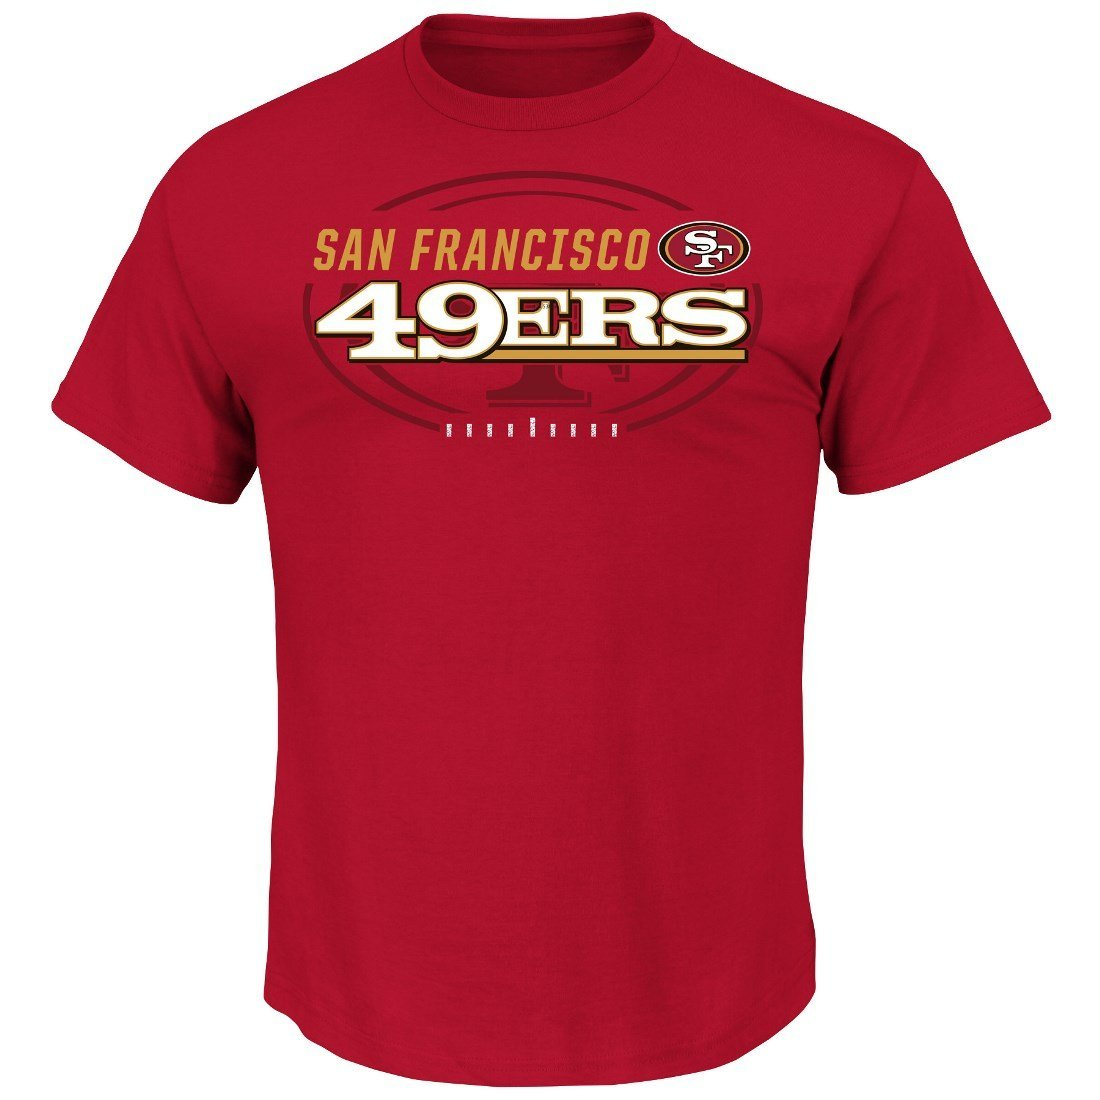 San Francisco 49ers Majestic NFL Of Great Value Men's Short Sleeve T-Shirt